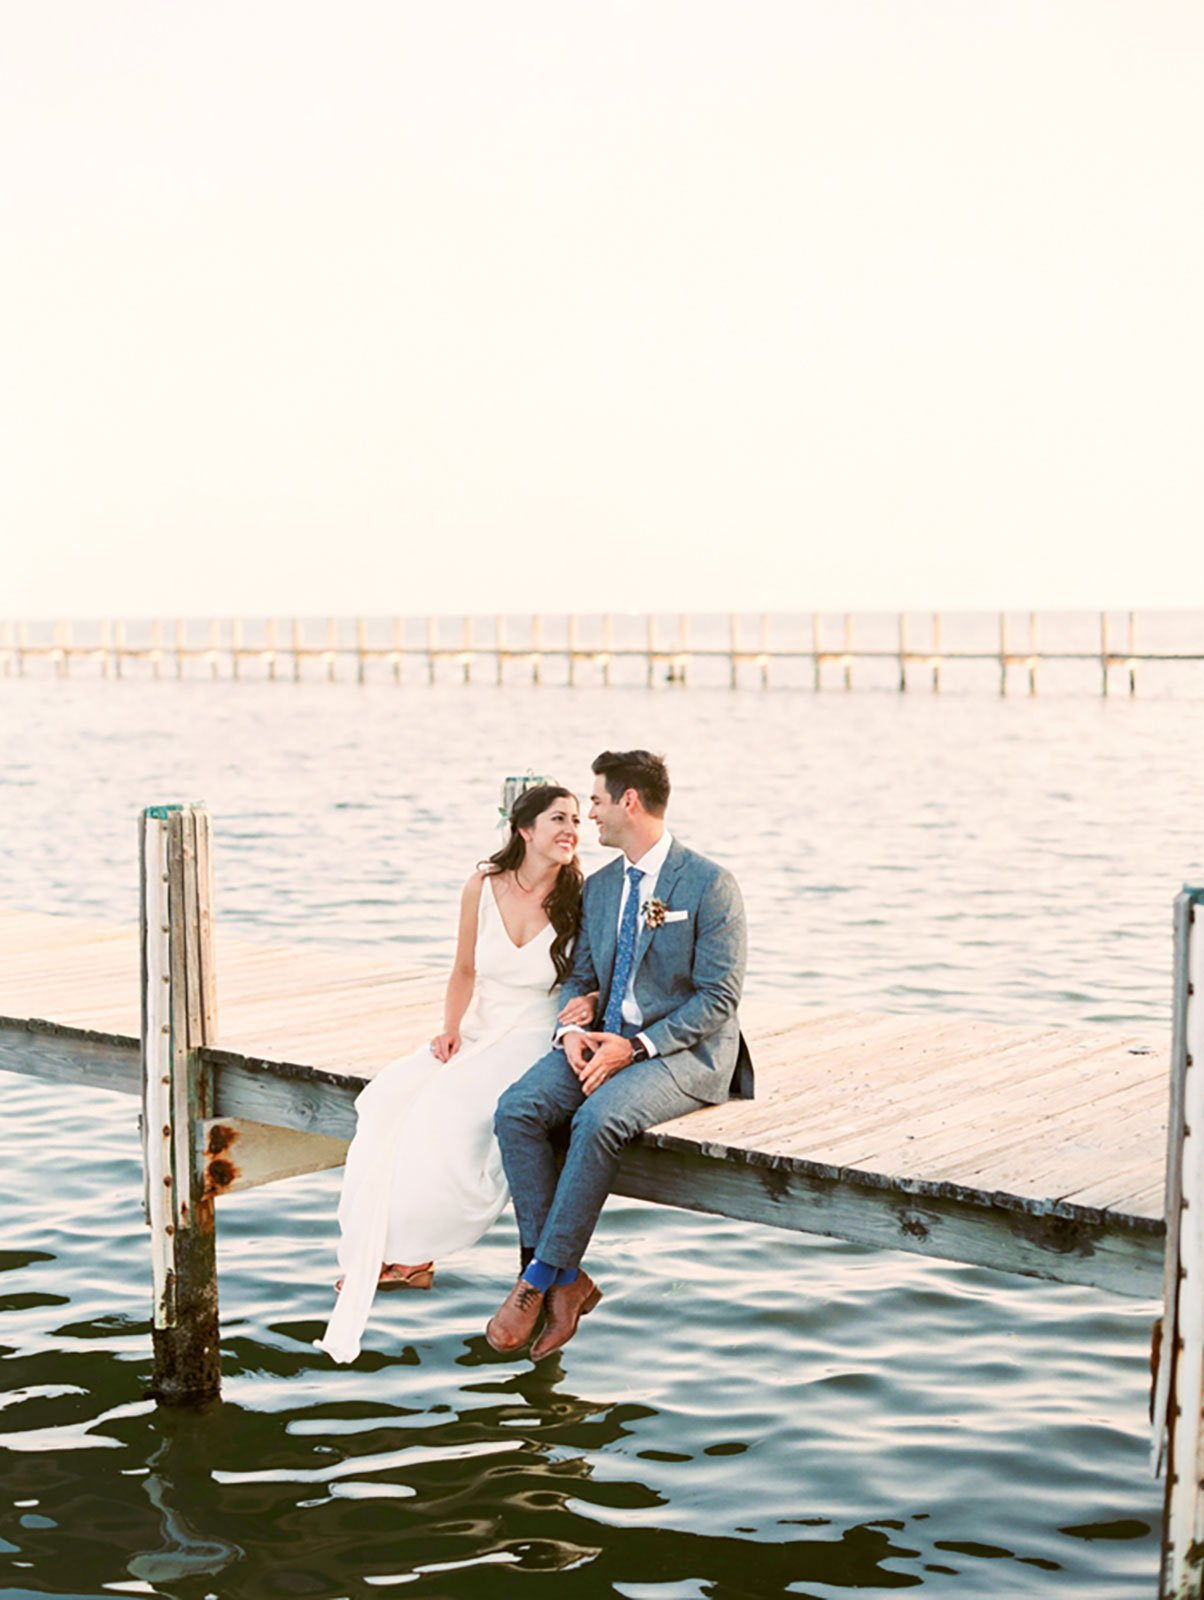 Bride and Groom enjoy a quiet moment on dock of at their waterfront wedding the Caribbean Resort in Islamorada, FL